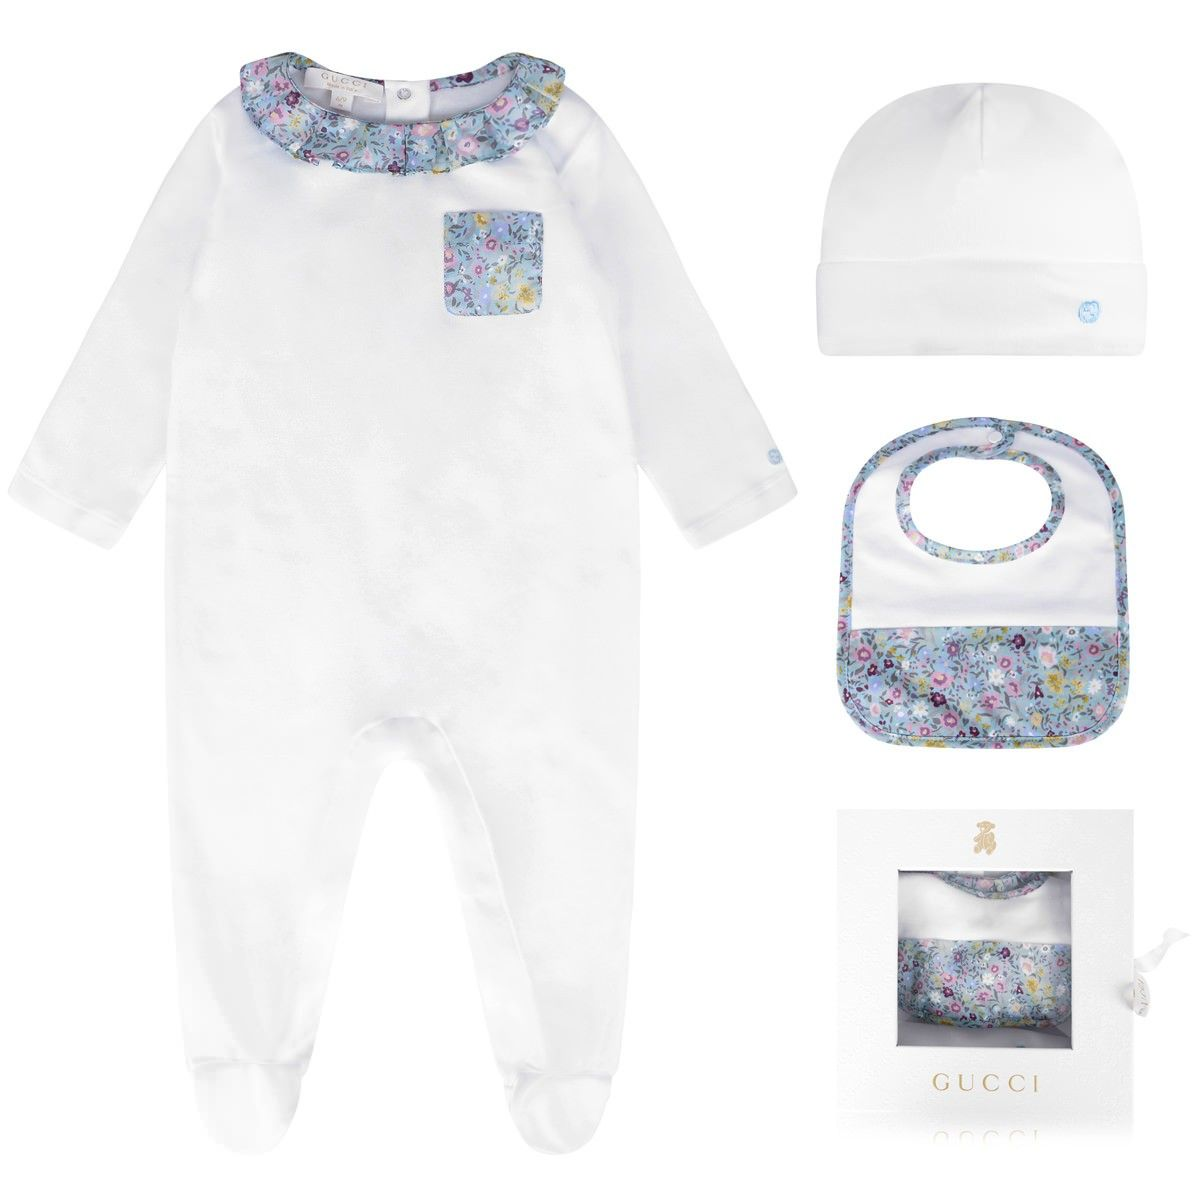 e14956afeb2a9 GUCCI Baby Girls White Floral 3 Piece Gift Set - Baby